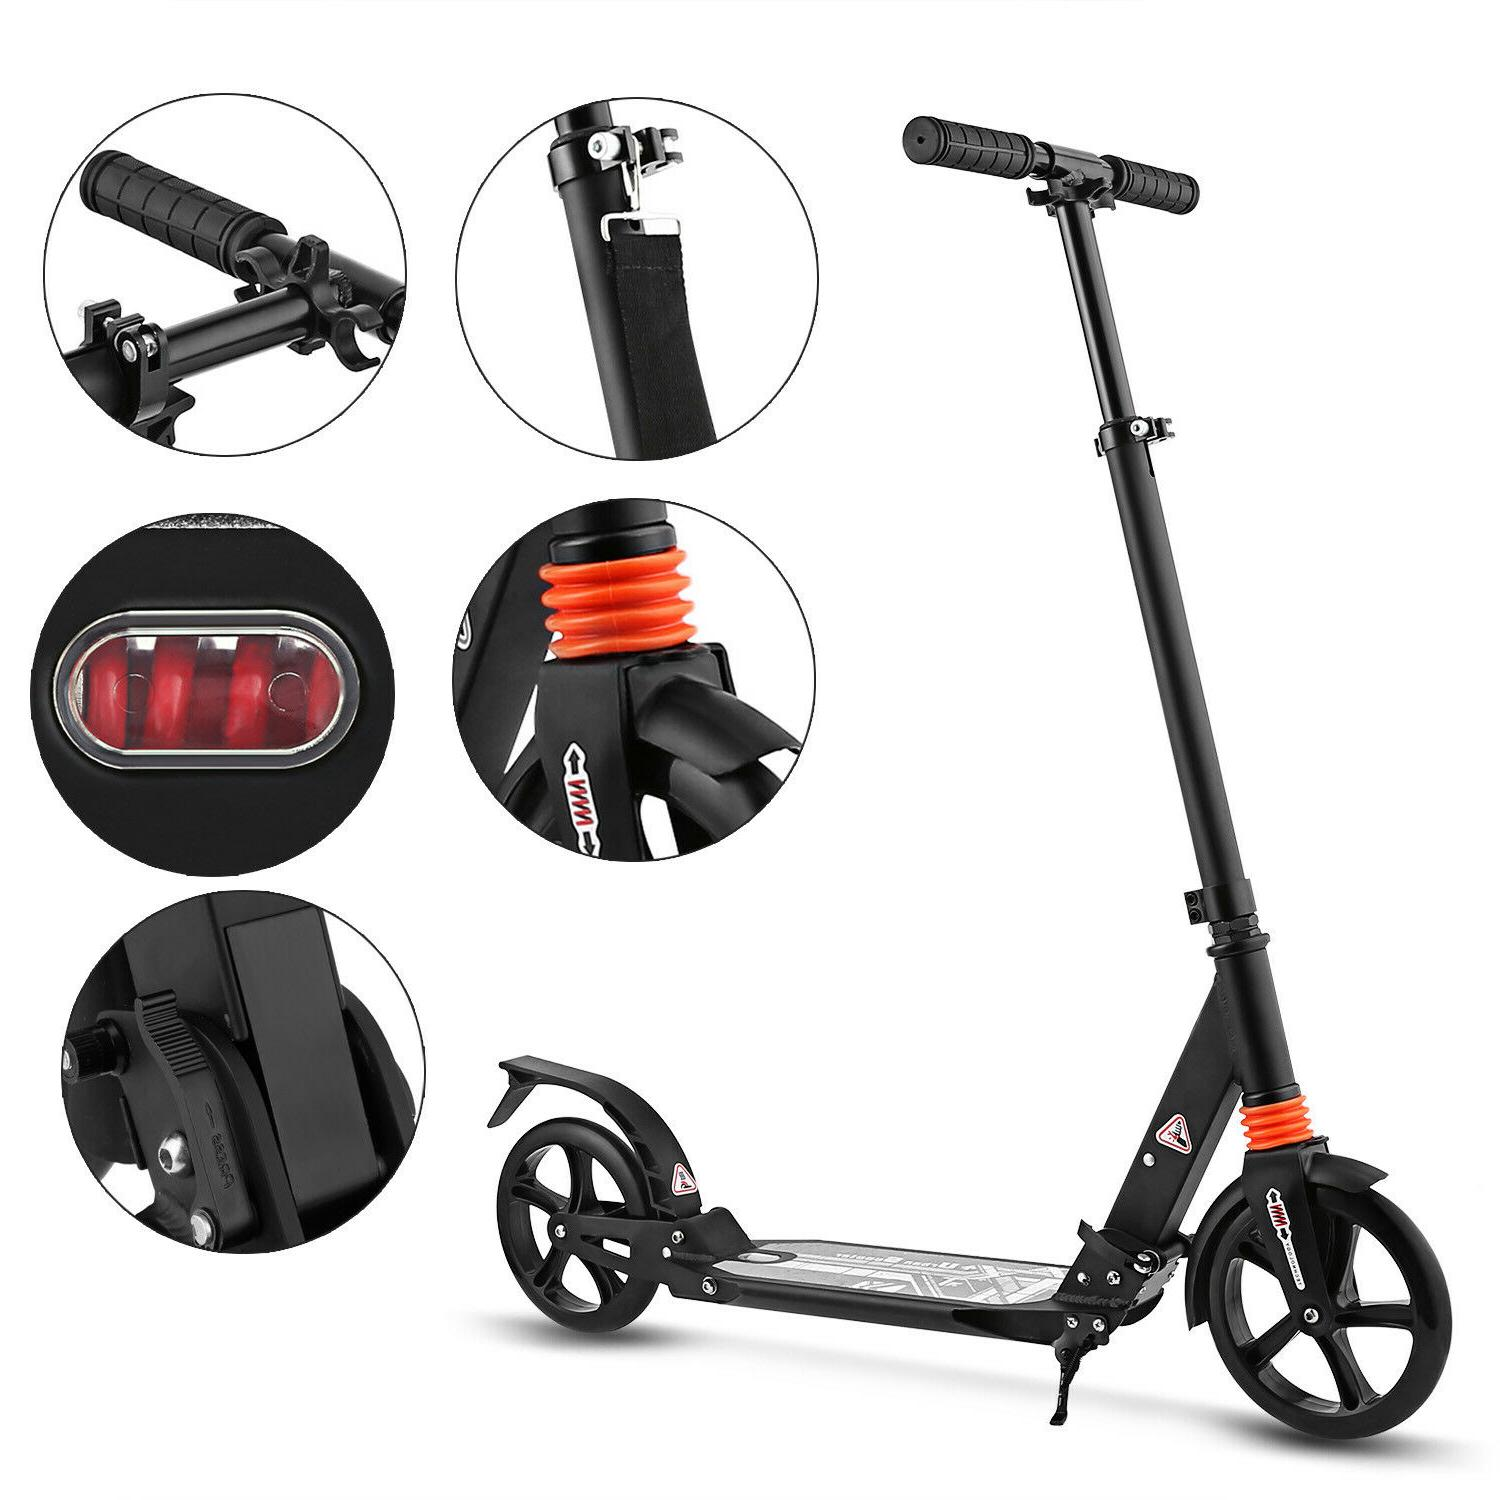 ANCHEER Scooter Scooter Kick Adjustable Height 2 Wheels